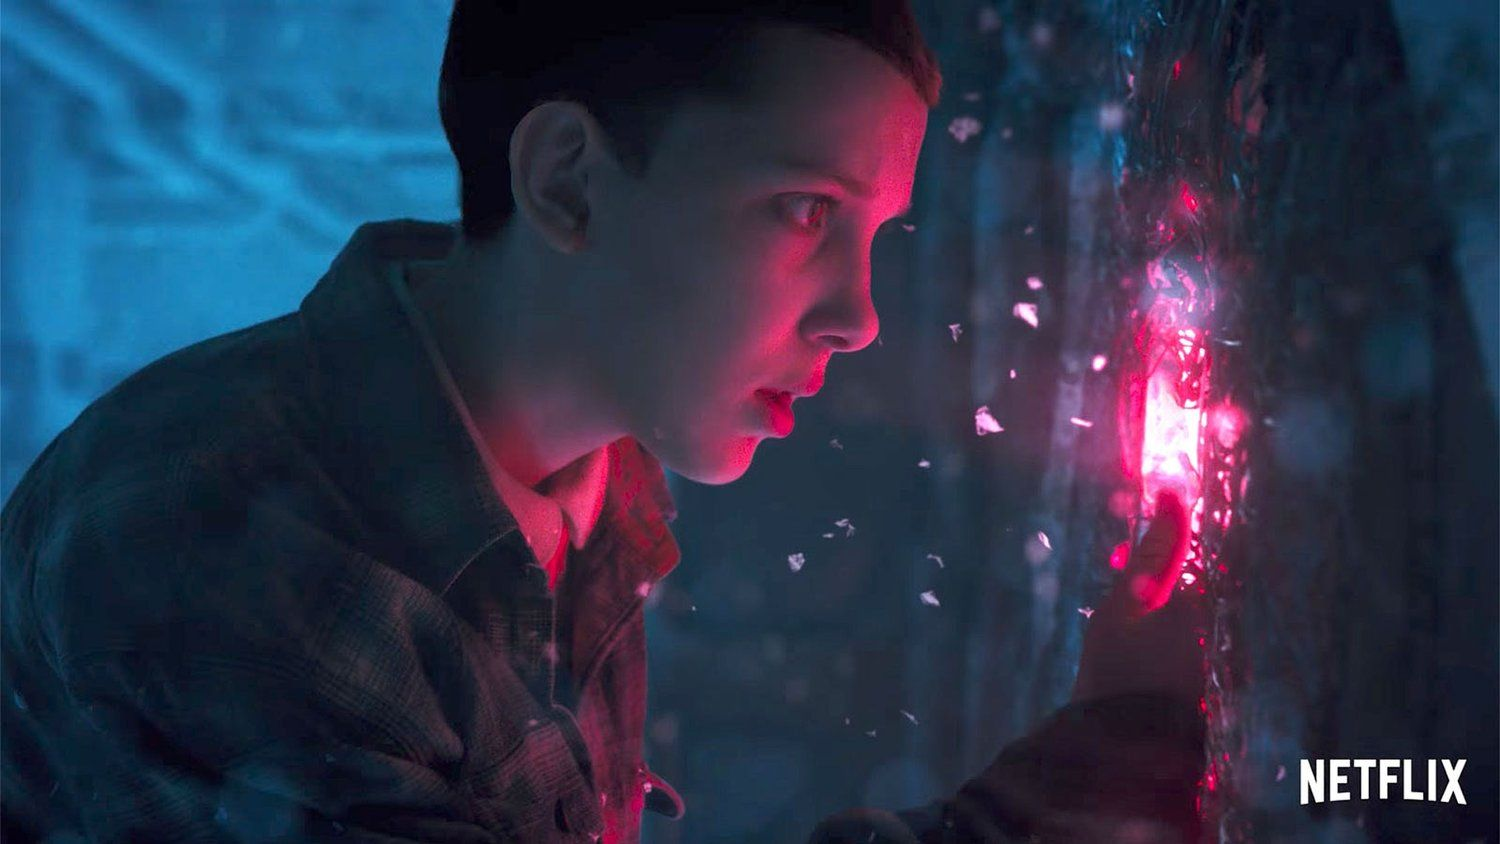 STRANGER THINGS Will likely Go Beyond Season 4 According to